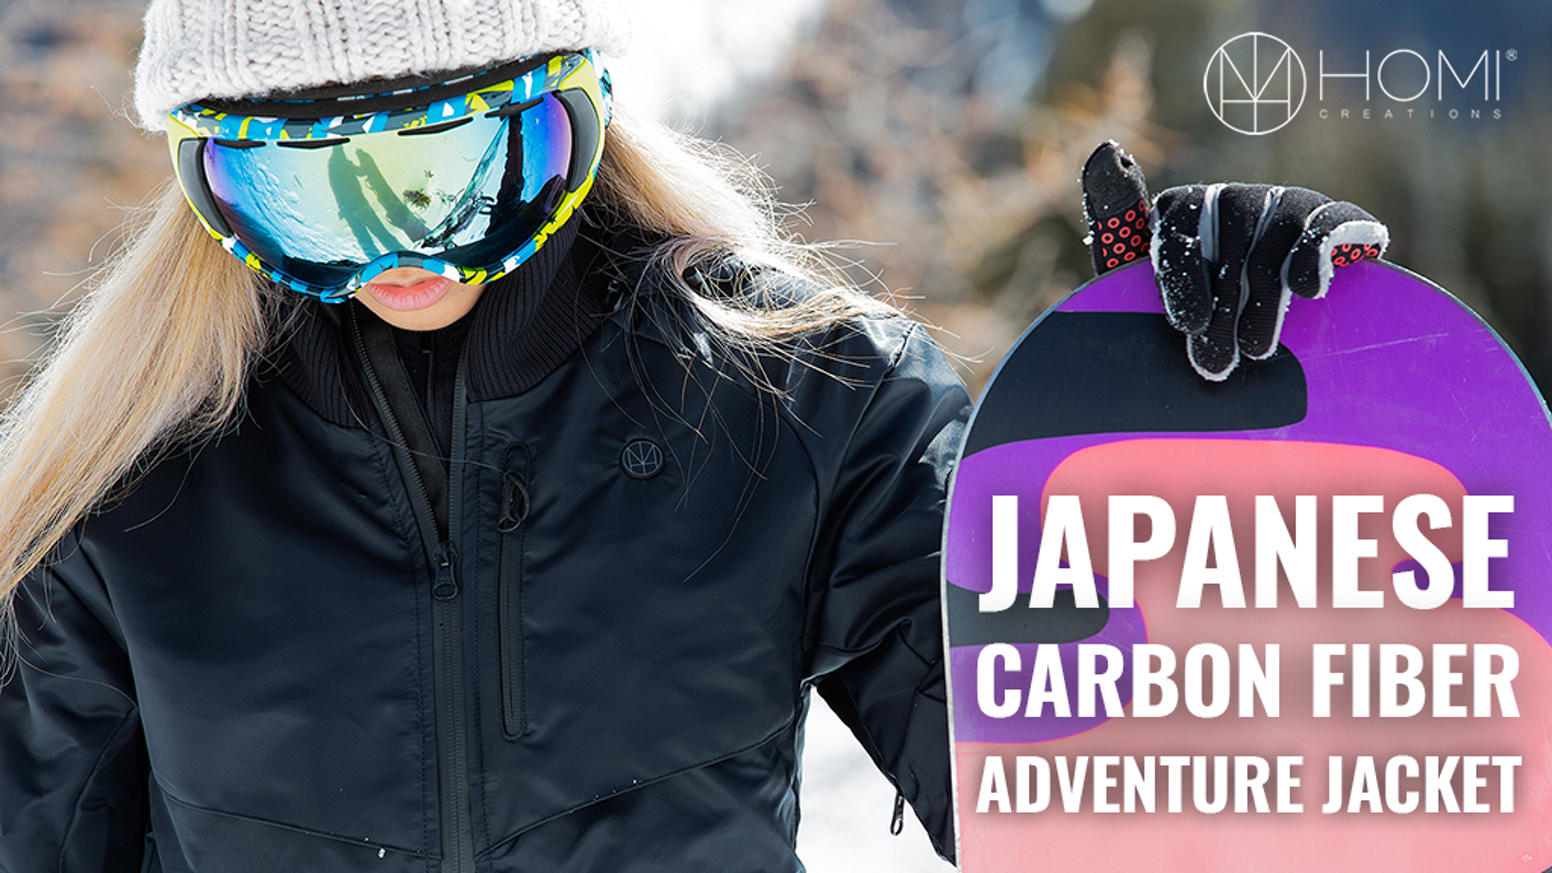 Click-to-heat. Japanese carbon fiber technology. Hidden face mask. Lighter than a water bottle. Down jacket warmth in a slim package.